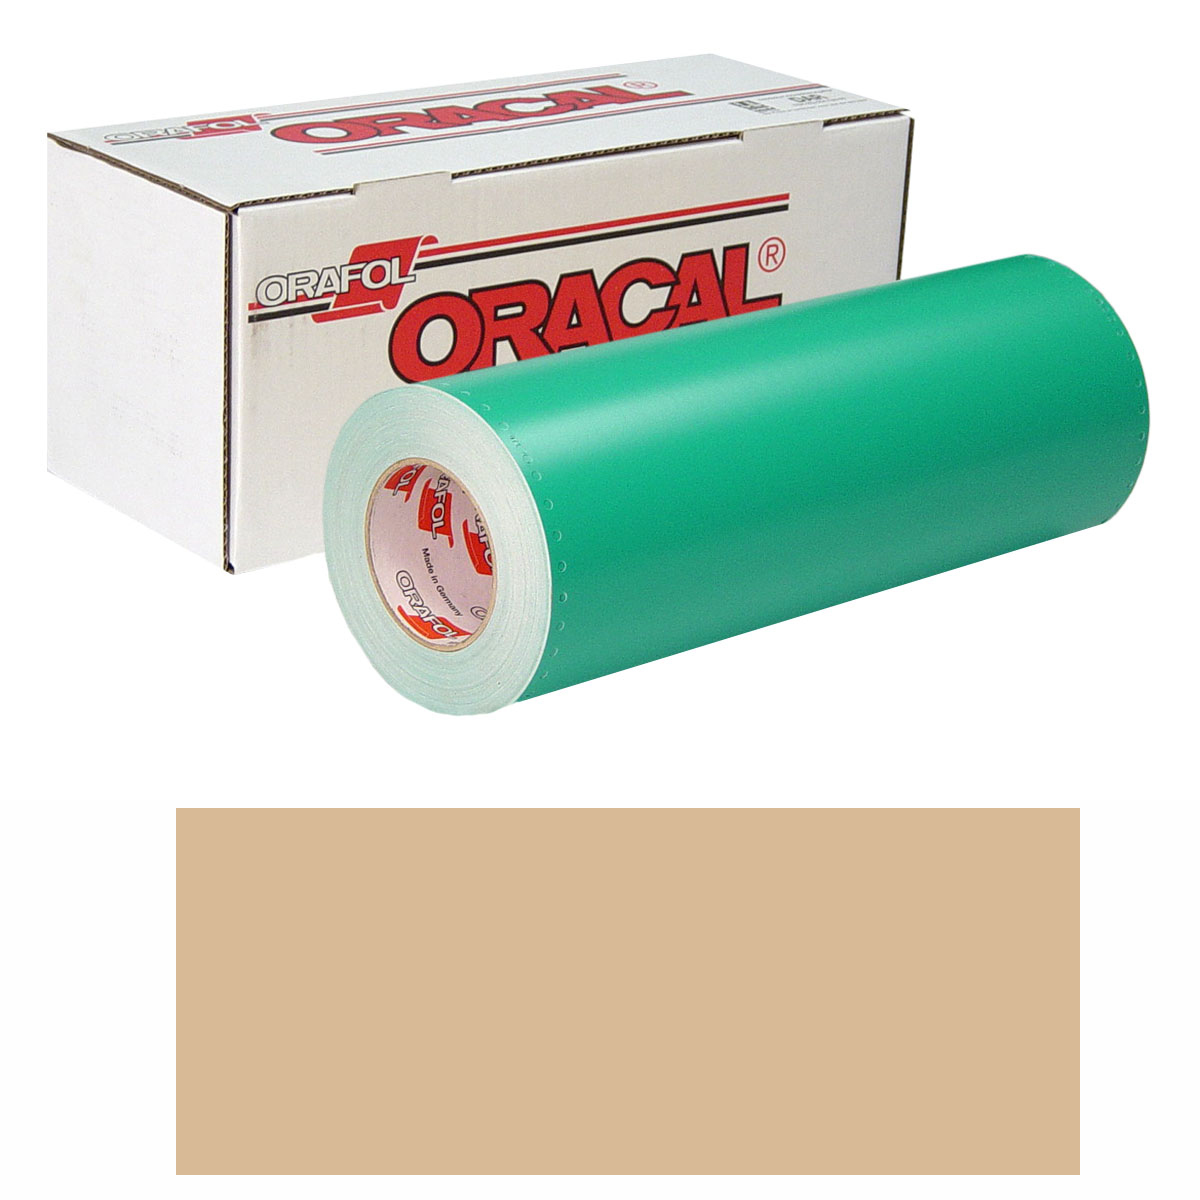 ORACAL 8500 Unp 48In X 10Yd 081 Light Brown